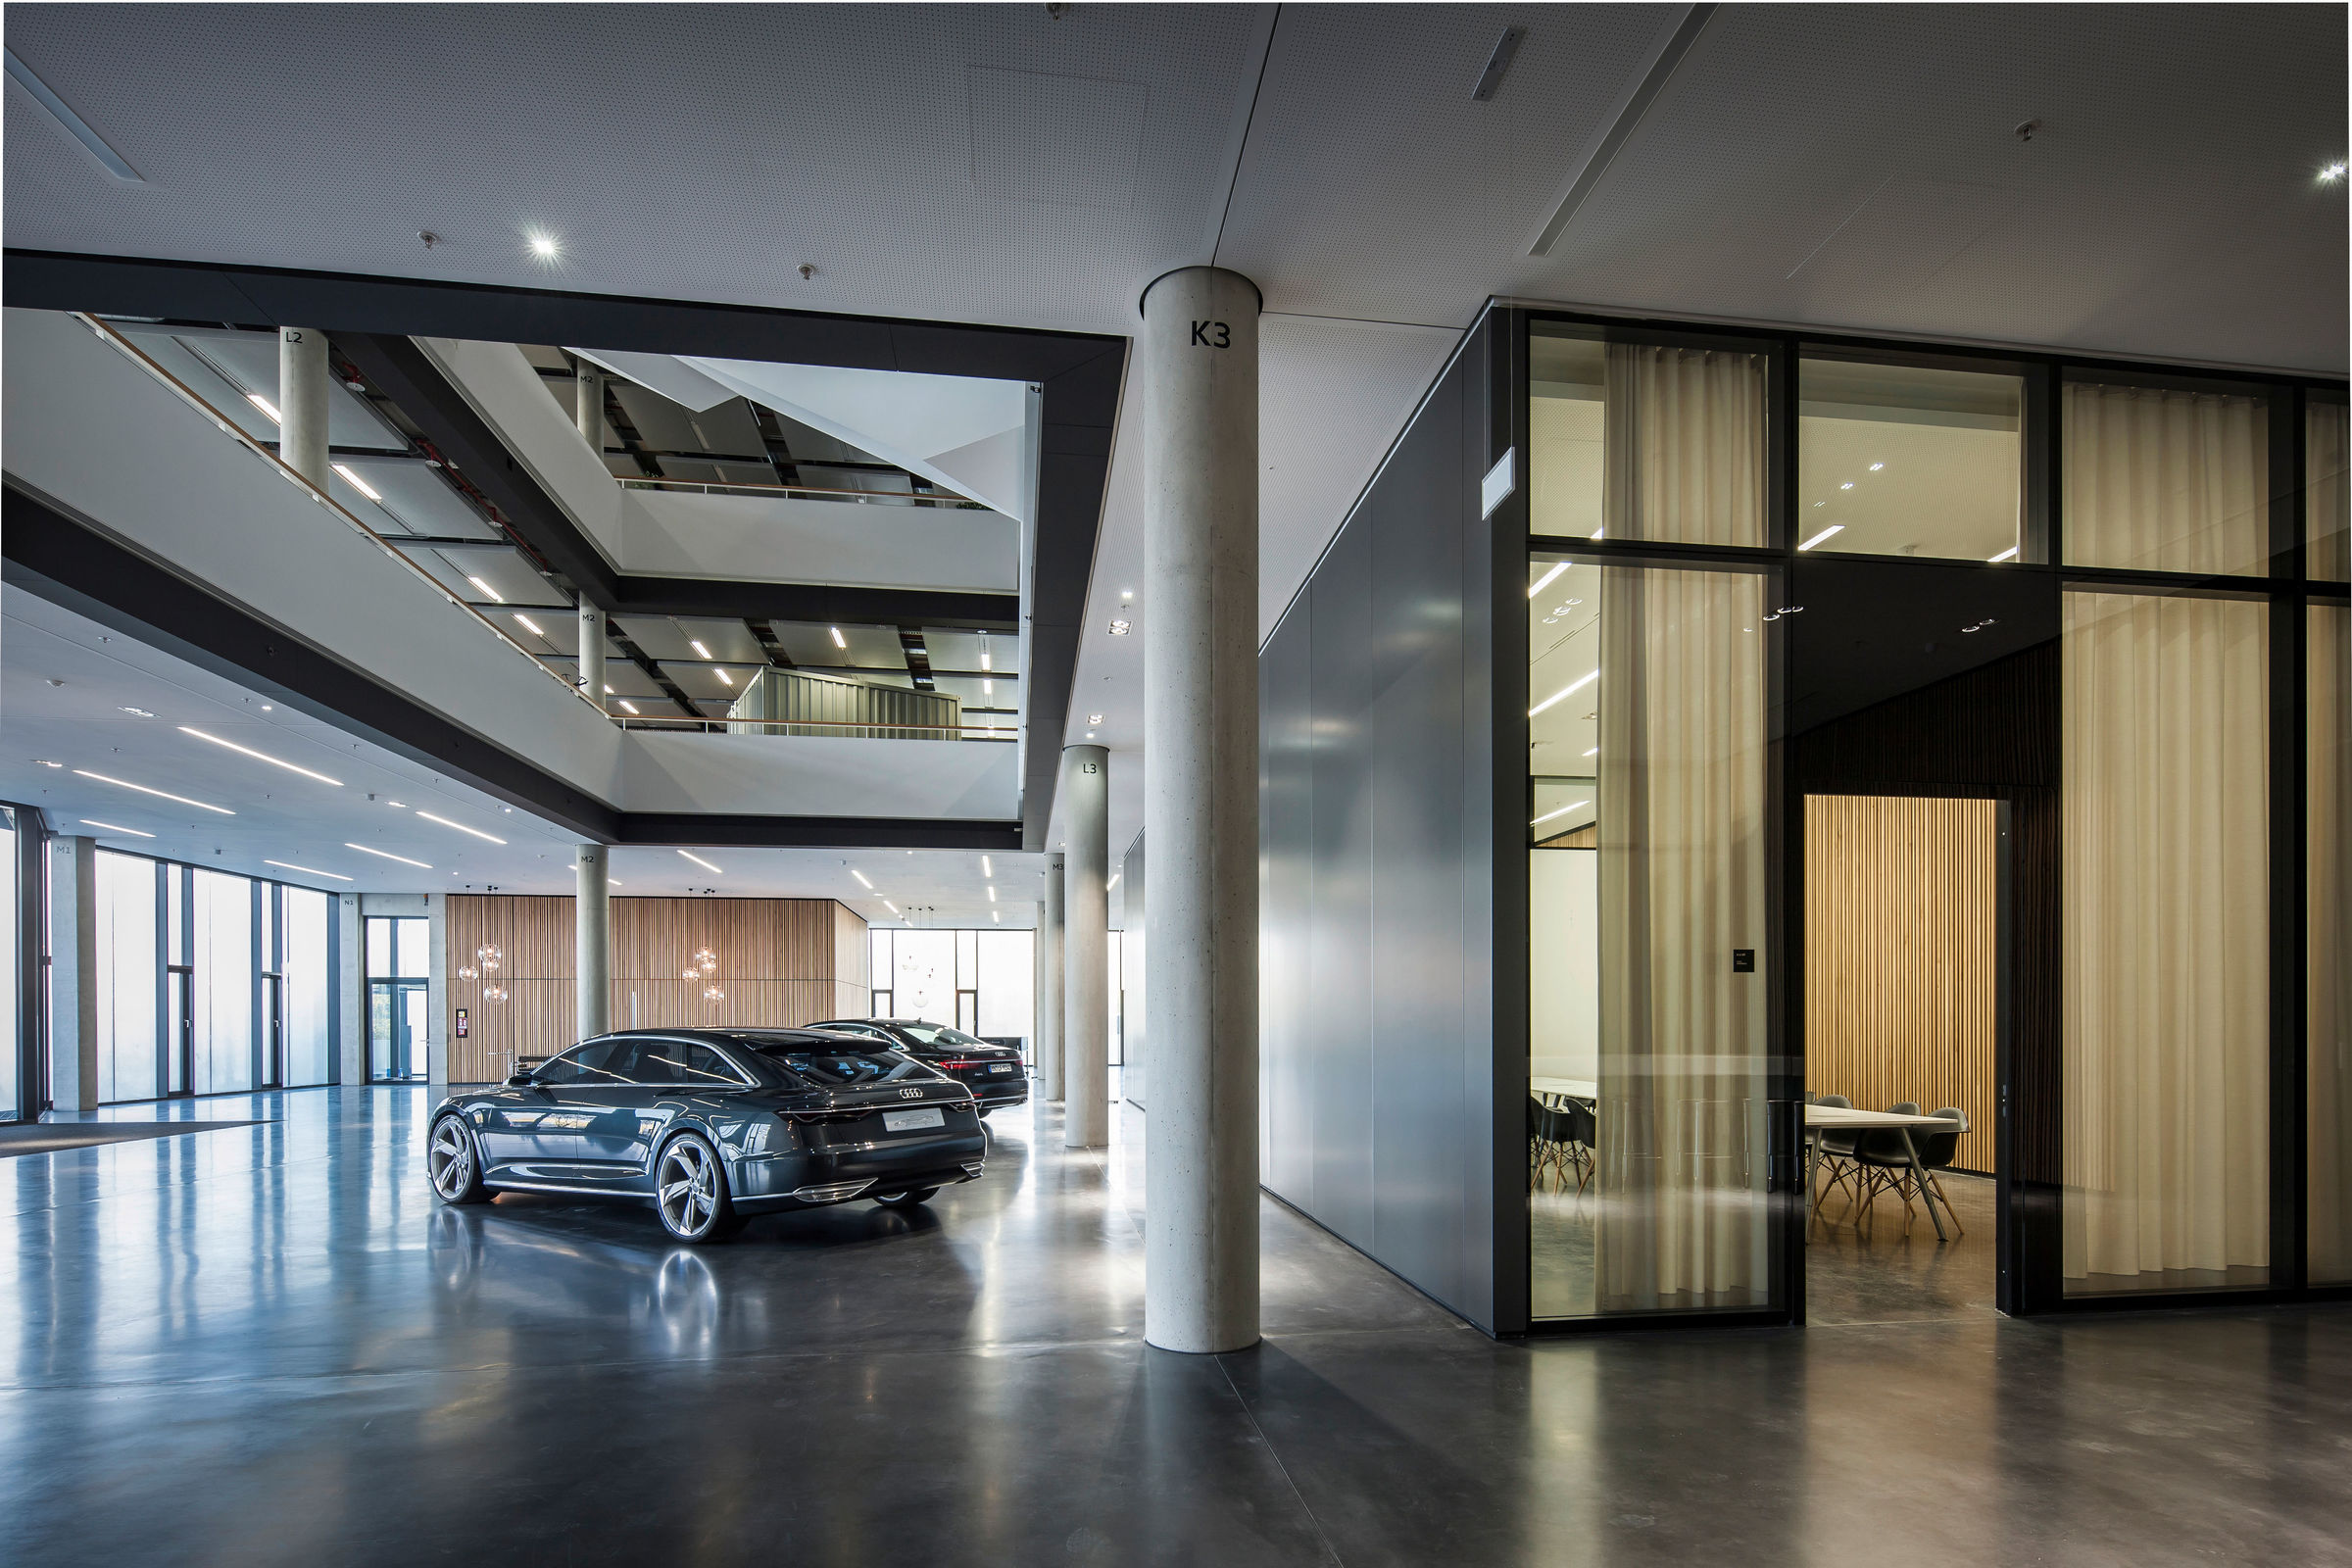 Das neue Audi Design Center